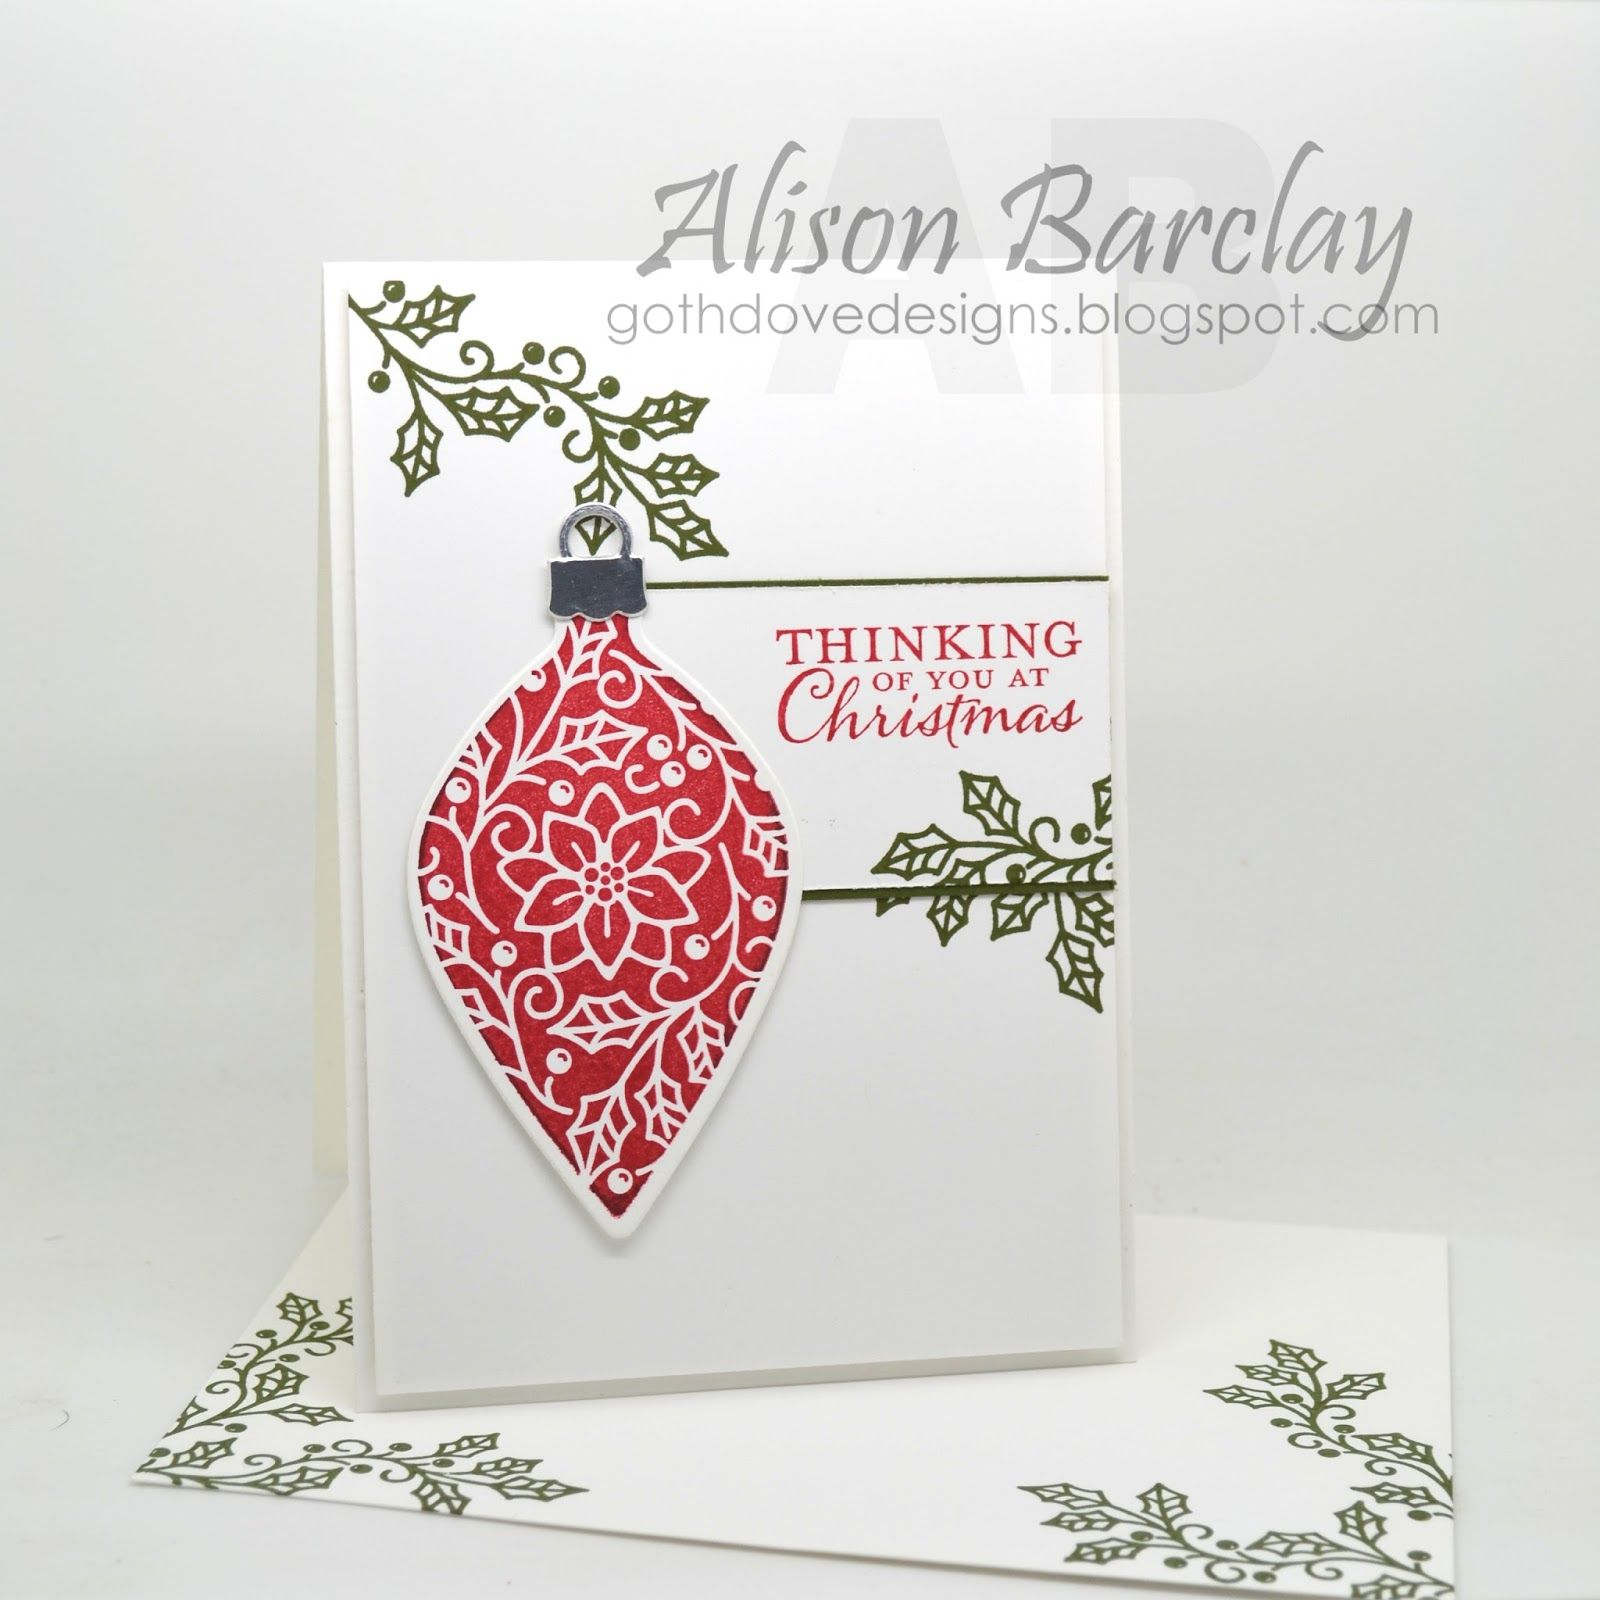 Gothdove designs alison barclay stampin up australia stampin embellished ornaments holly is peeping down i just love mossy meadow against a stark white background kristyandbryce Image collections